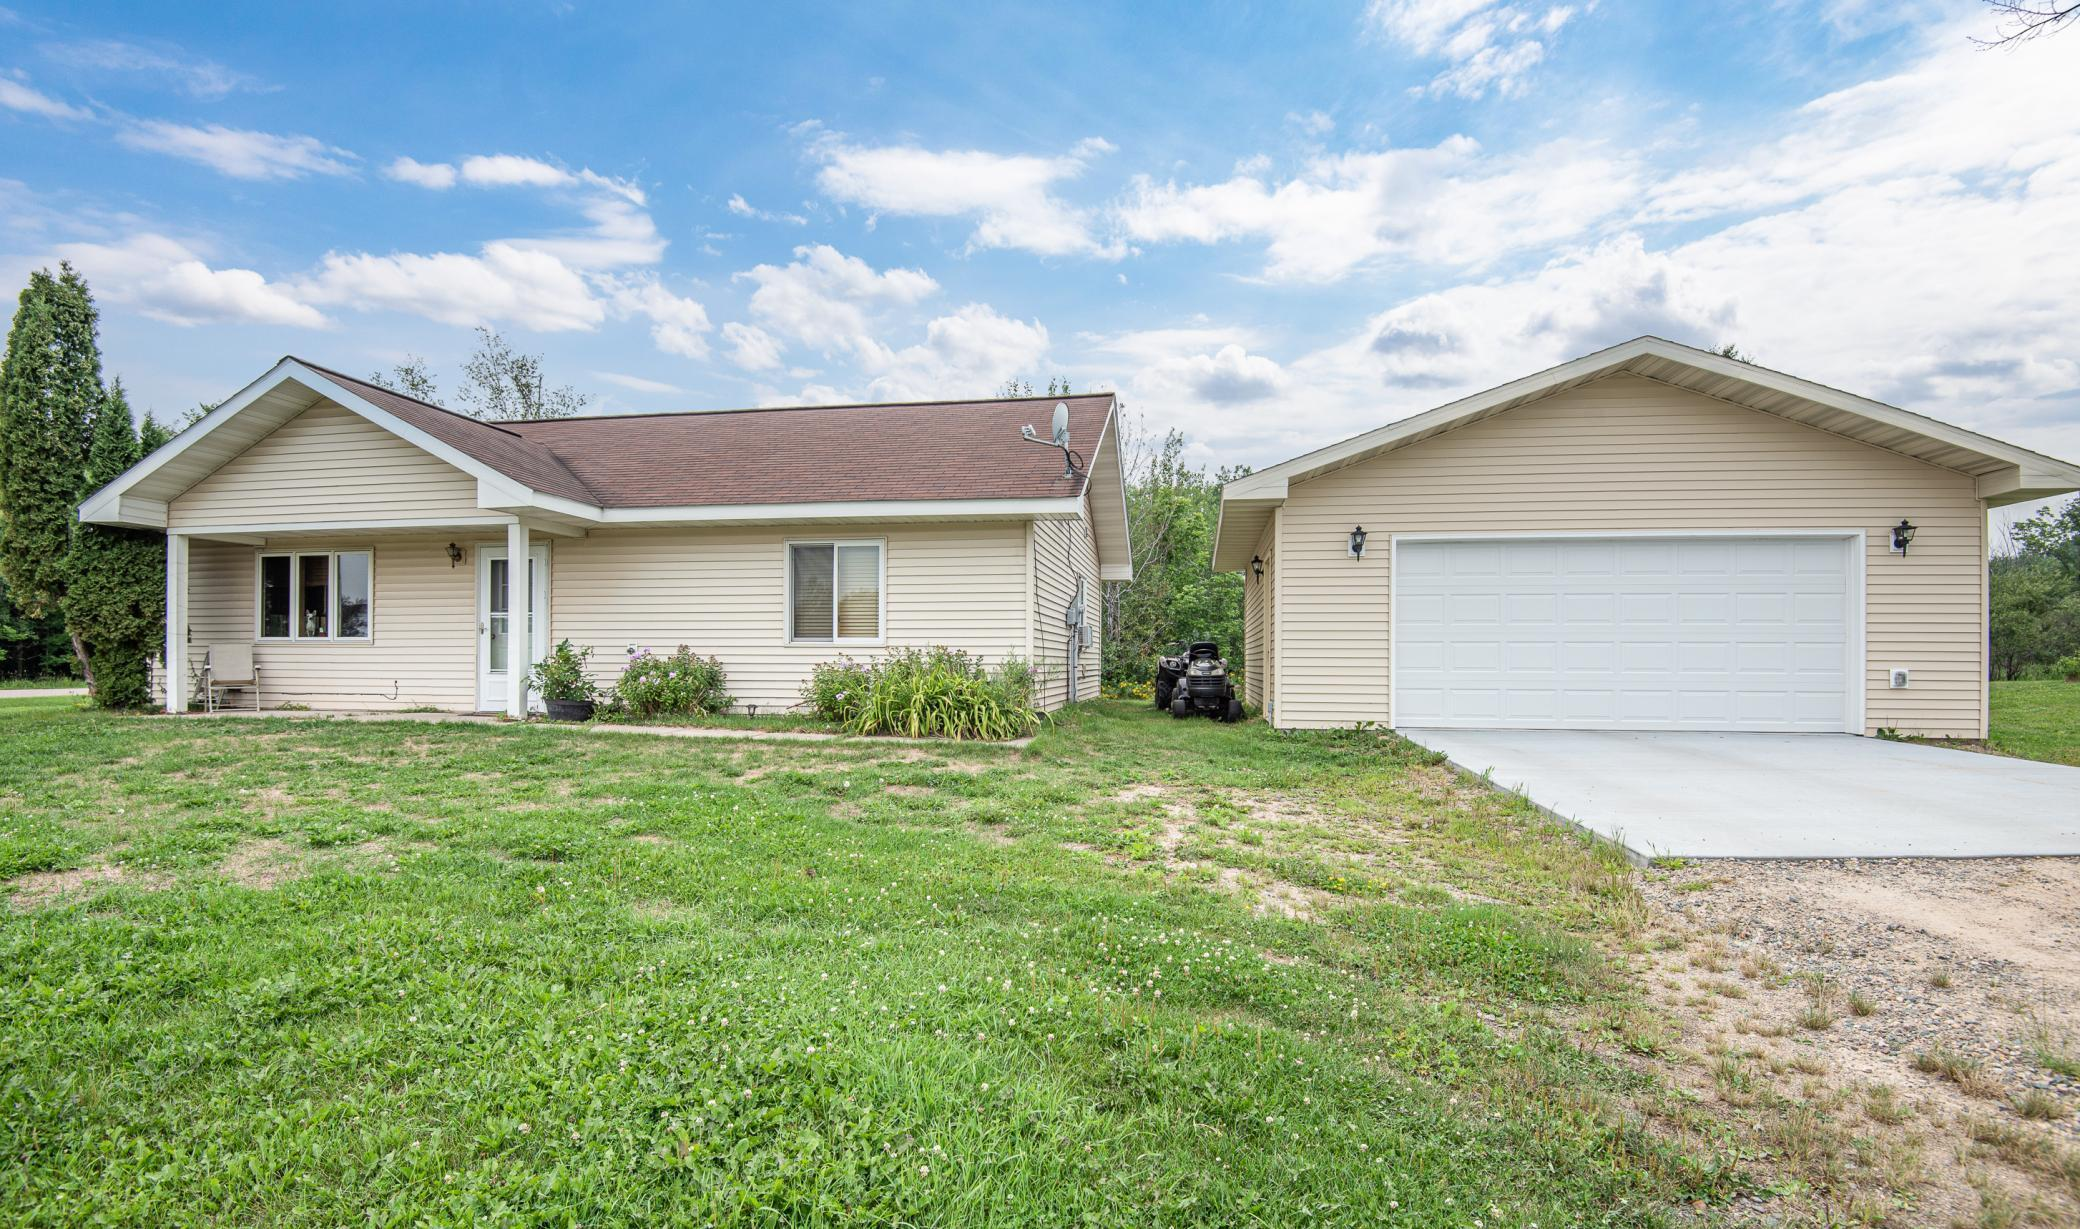 Lovely and  spacious one level living! Your 2 bedroom 1 bath home has in-floor heat, main floor laundry, open floor plan, new laminate wood flooring, new bedroom carpeting and extra wide doorways as well as maintenance free siding. You will also enjoy the new 24' X 24 garage with it's concrete flooring and electric installed.  For your entertaining convenience you have a large 20 X 20 deck. This home sits in the newer home area of Nashwauk and is connected to city utilities.   It's all here, everything that you say you want!